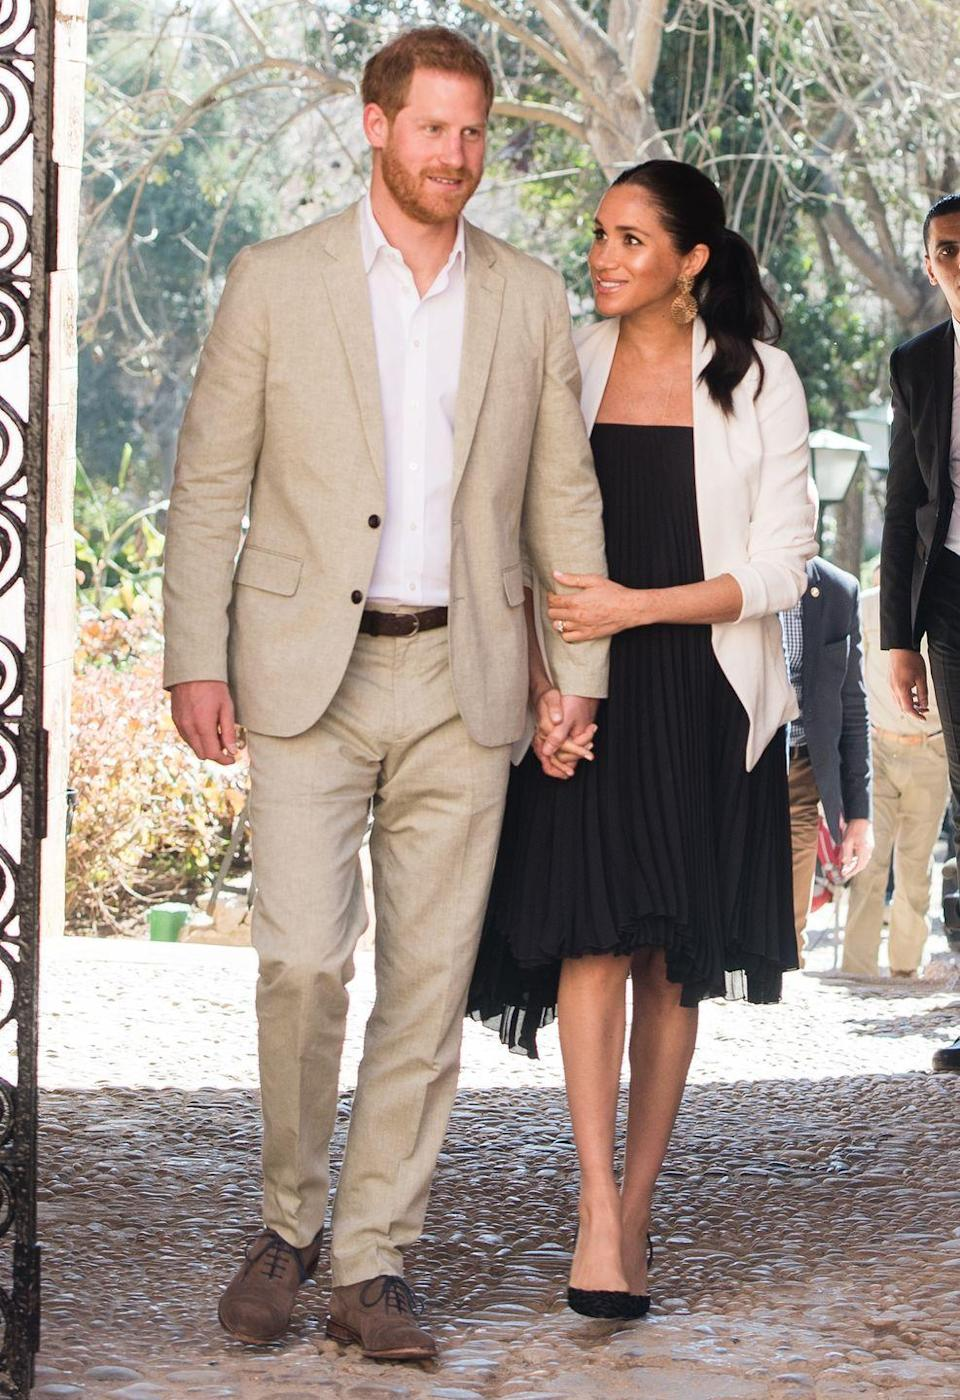 <p>Meghan gazes up at Harry as they visit the Andalusian Gardens in Rabat, Morocco. </p>